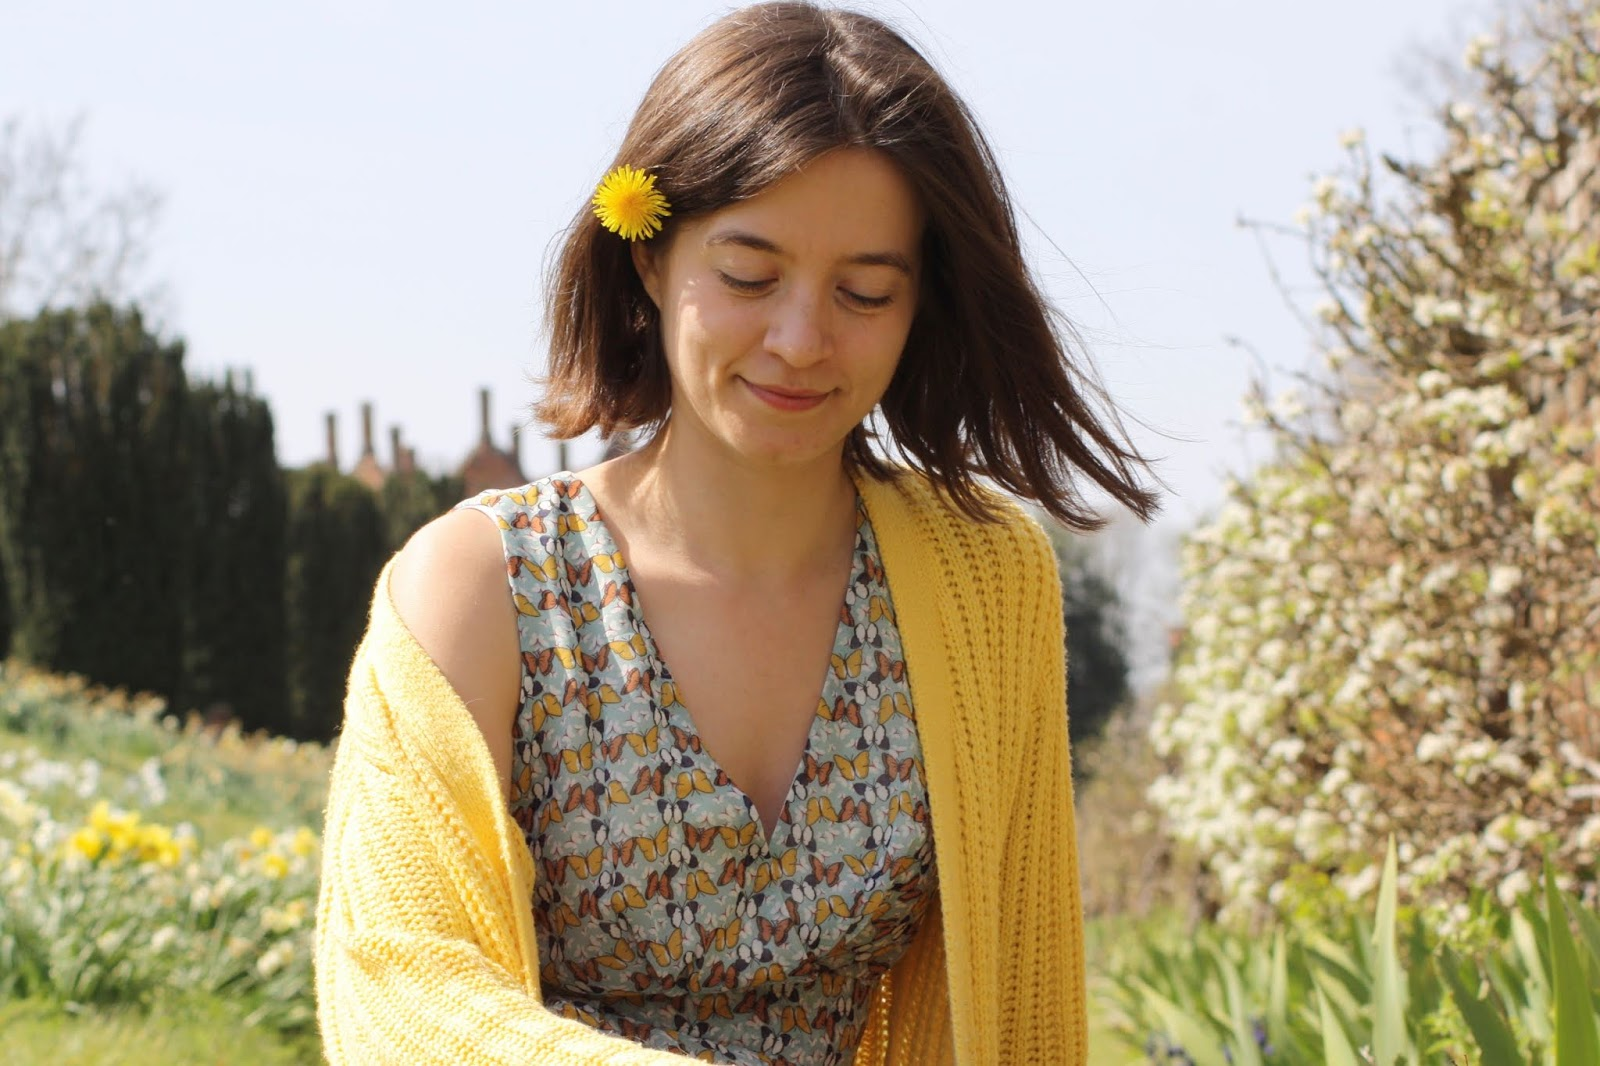 Abbey, wearing a butterfly print dress and yellow cardigan, smiles as she sits facing the camera with a dandelion tucked in her brown hair